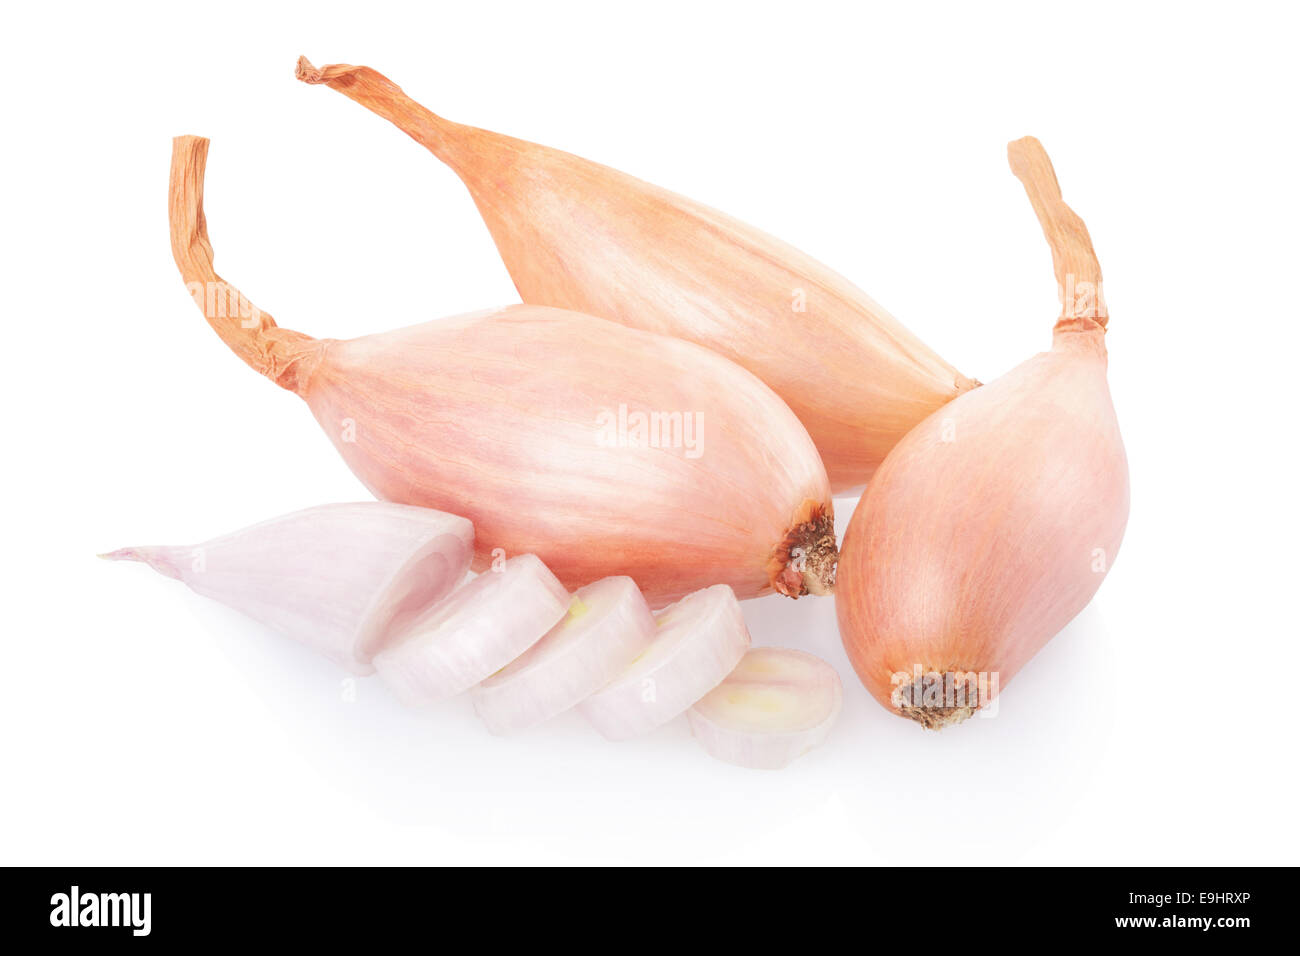 Shallot onions and slices isolated on white, clipping path included - Stock Image